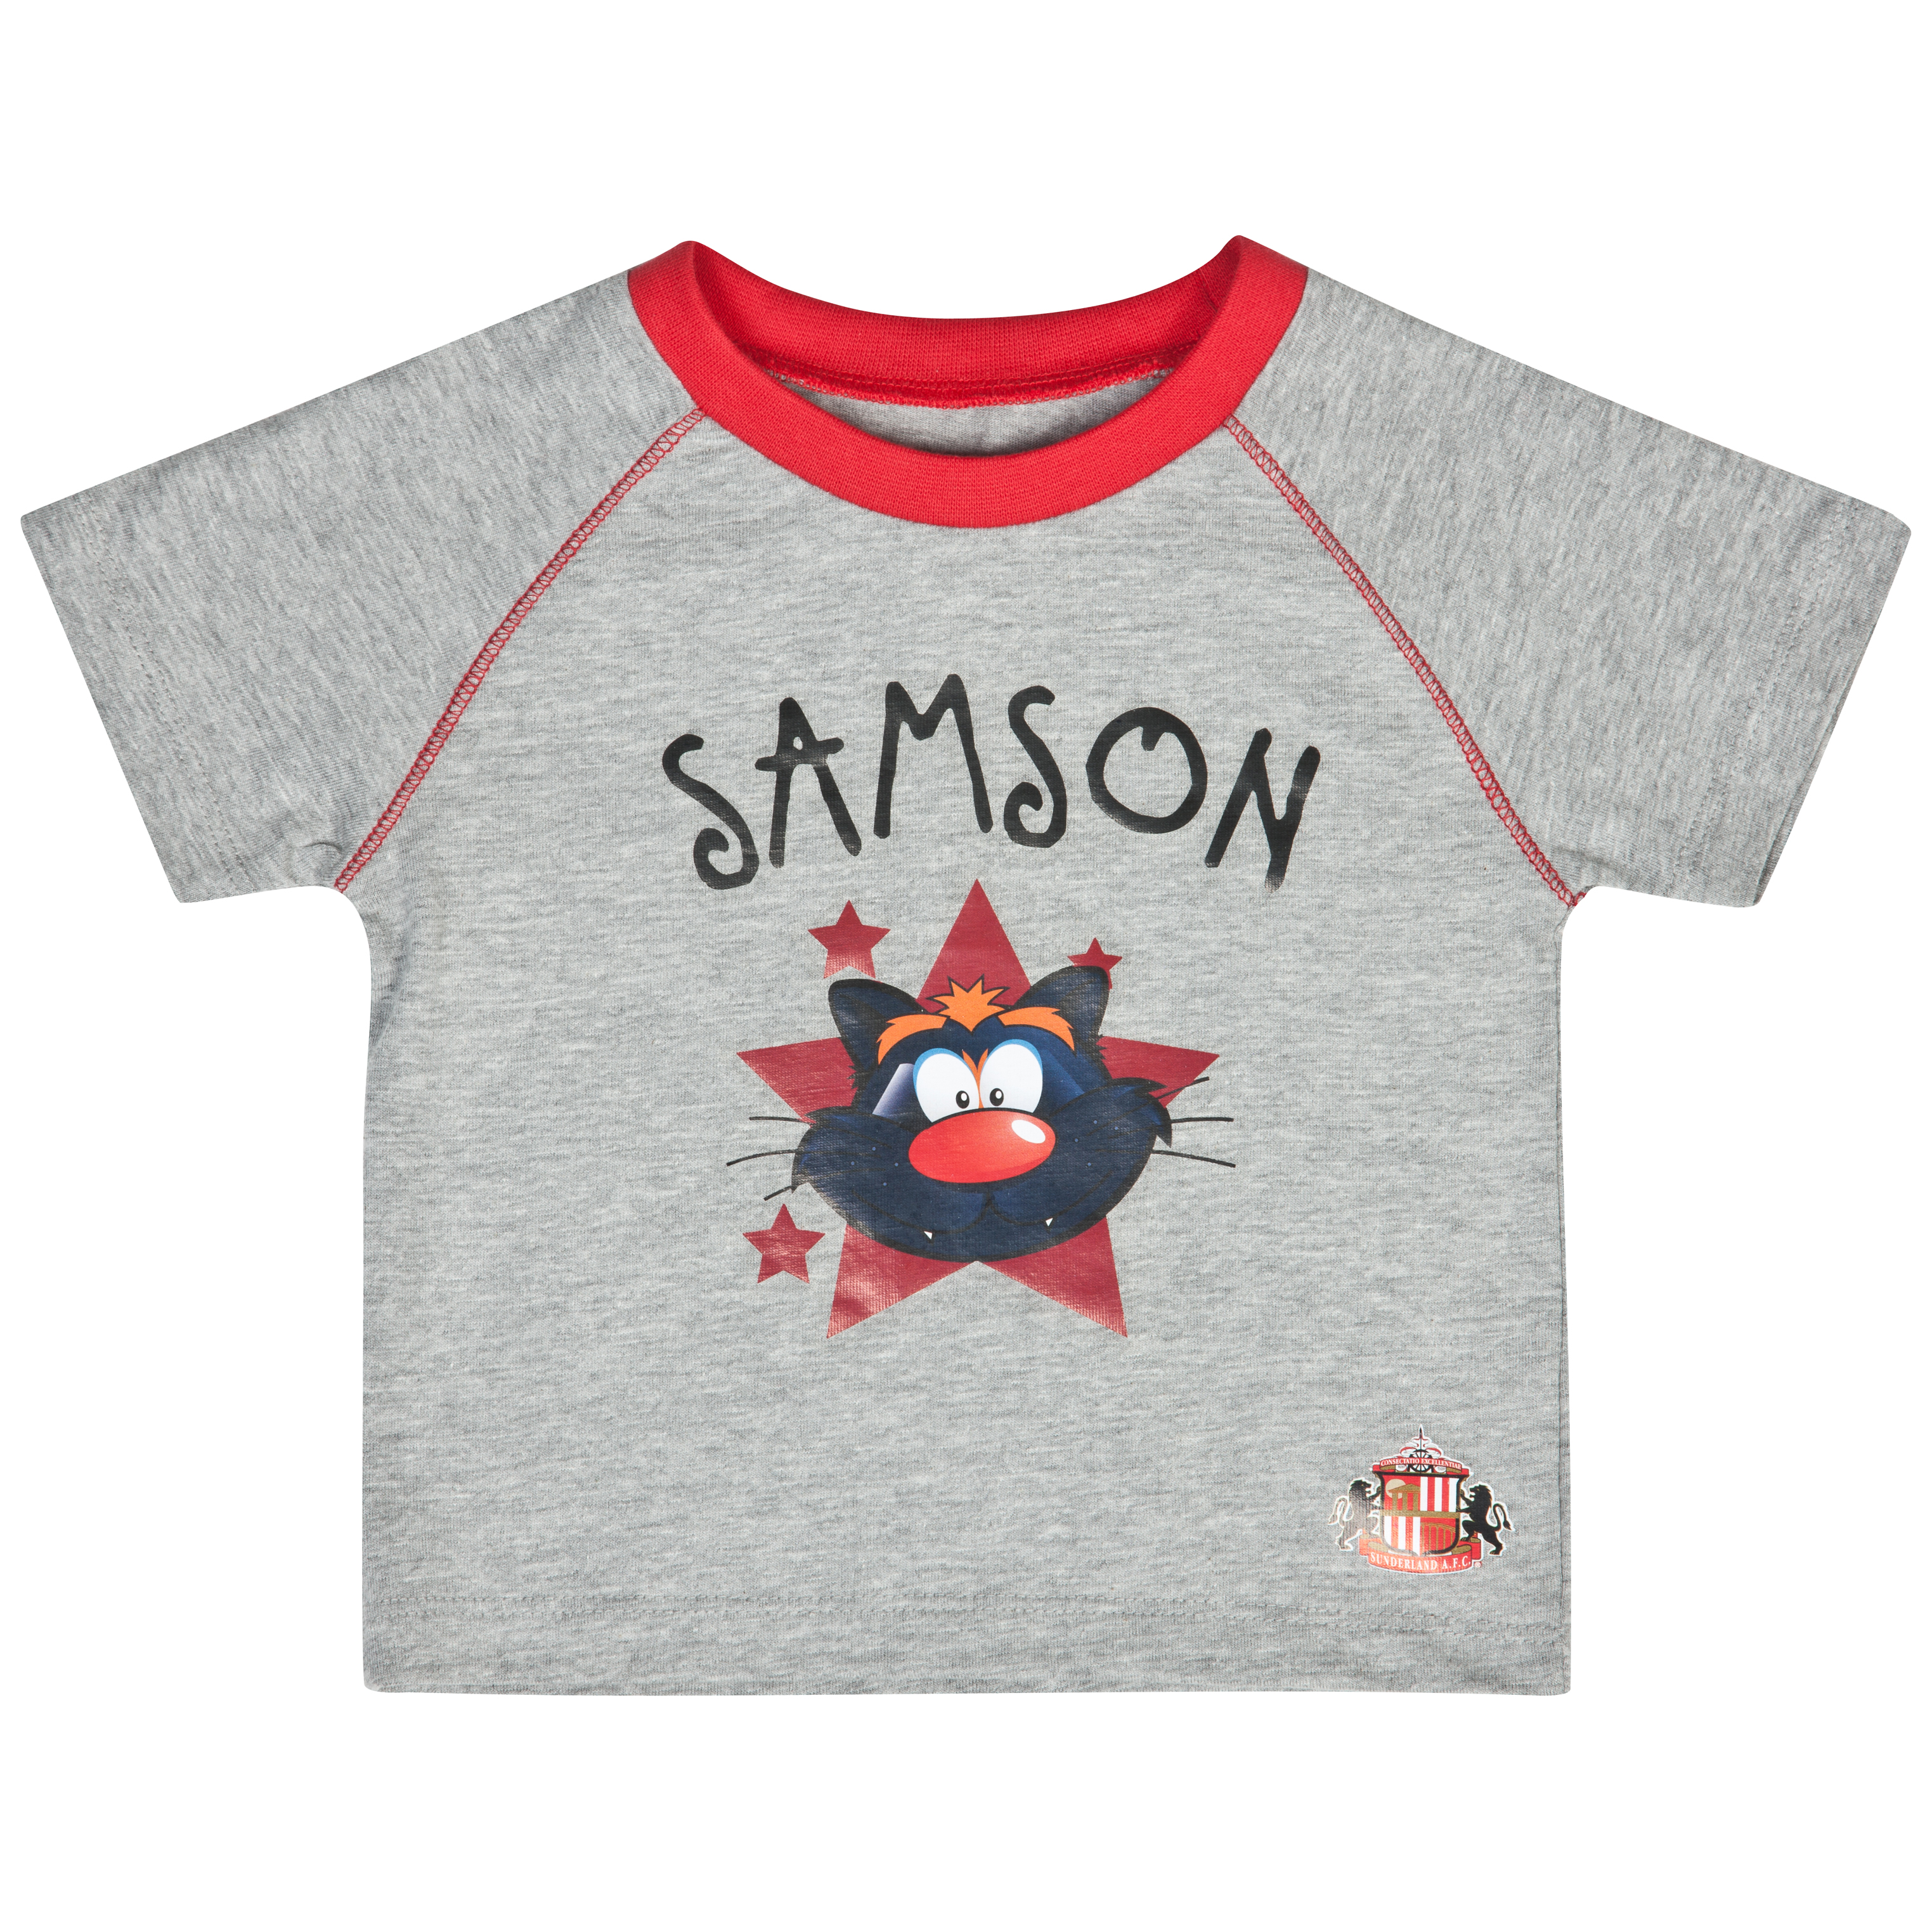 Sunderland Samson T-Shirt - Grey/Red - Baby